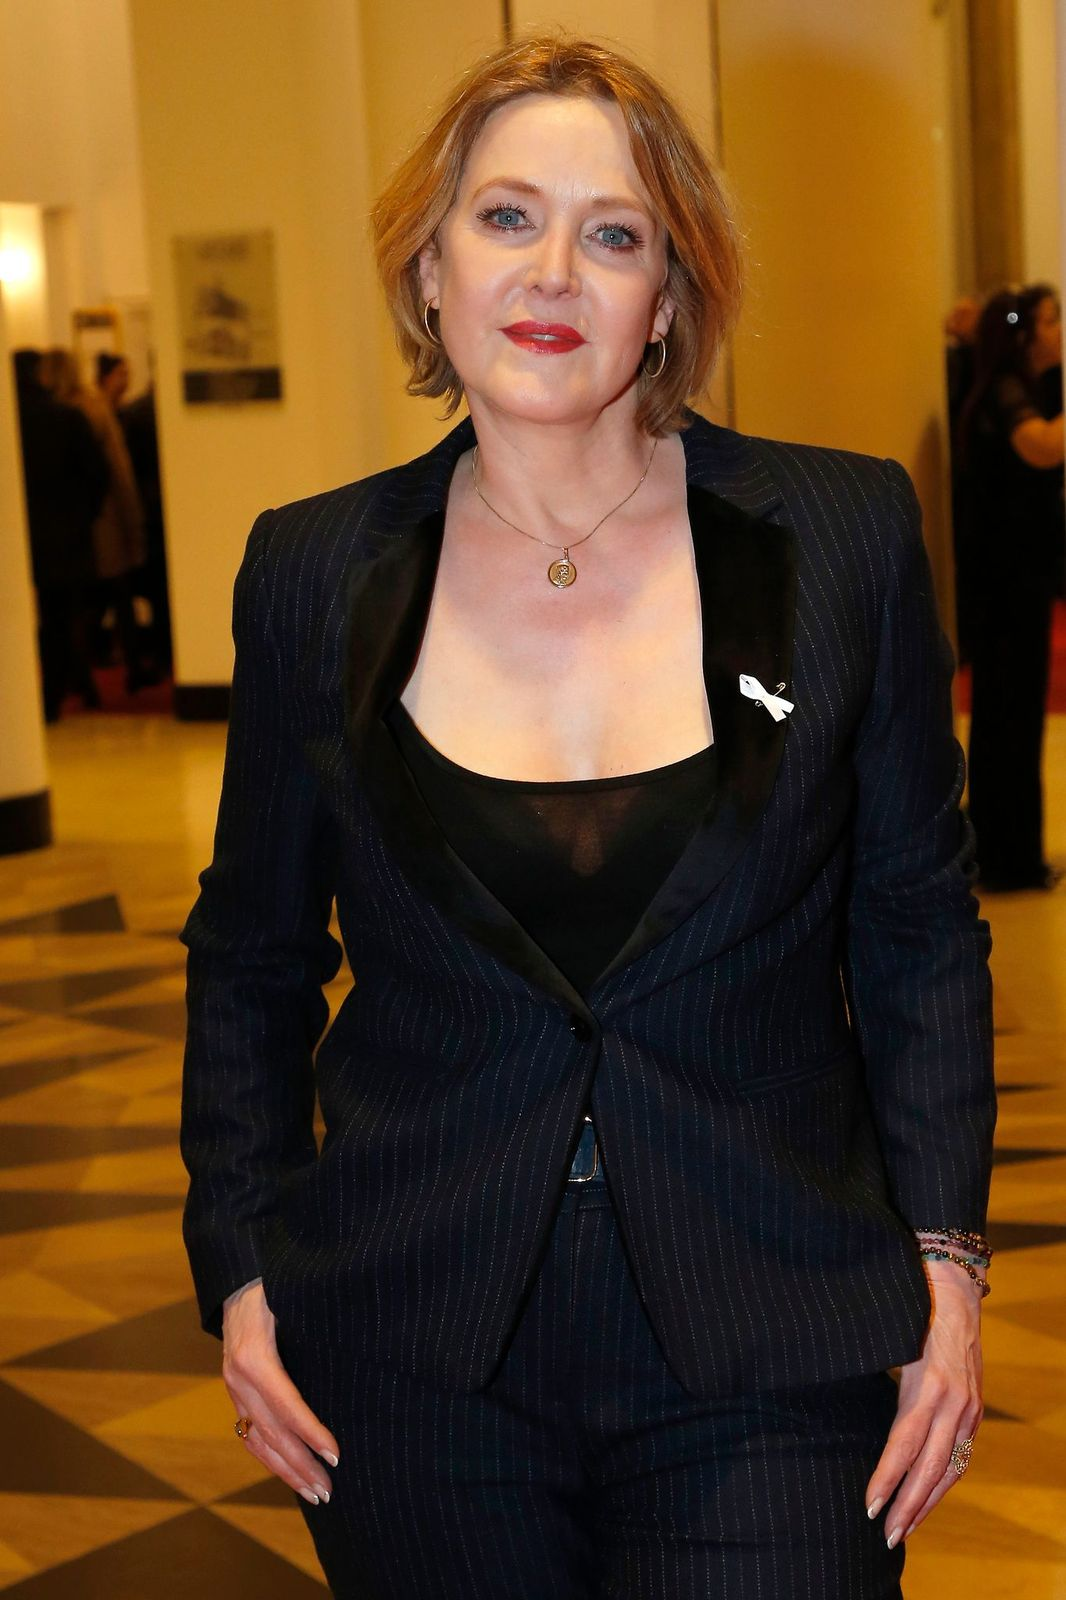 L'actrice Agnès Soral | Photo : Getty Images.